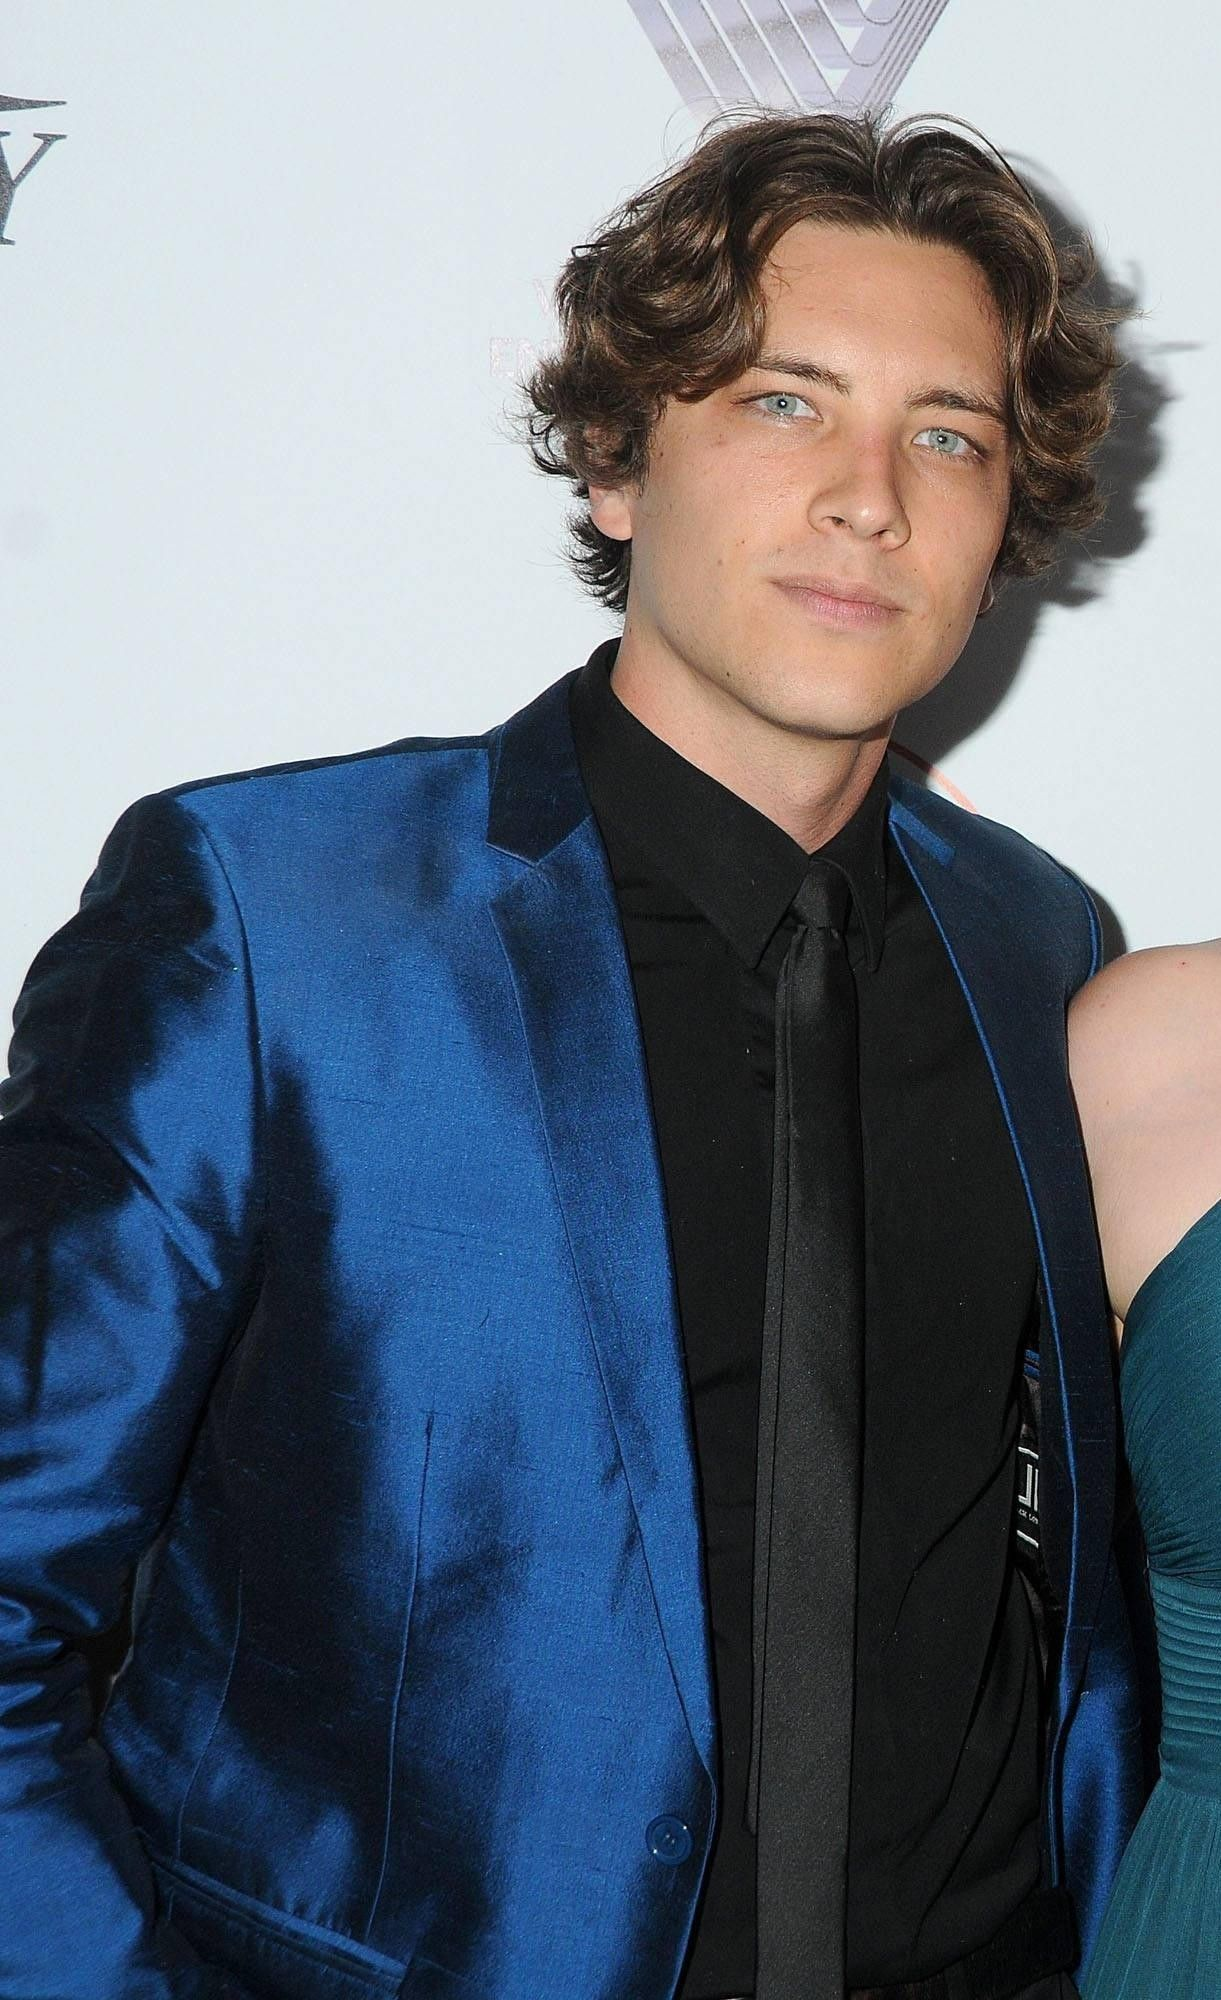 Pin by j on Cody Fern in 2020 | Beautiful person, Cody